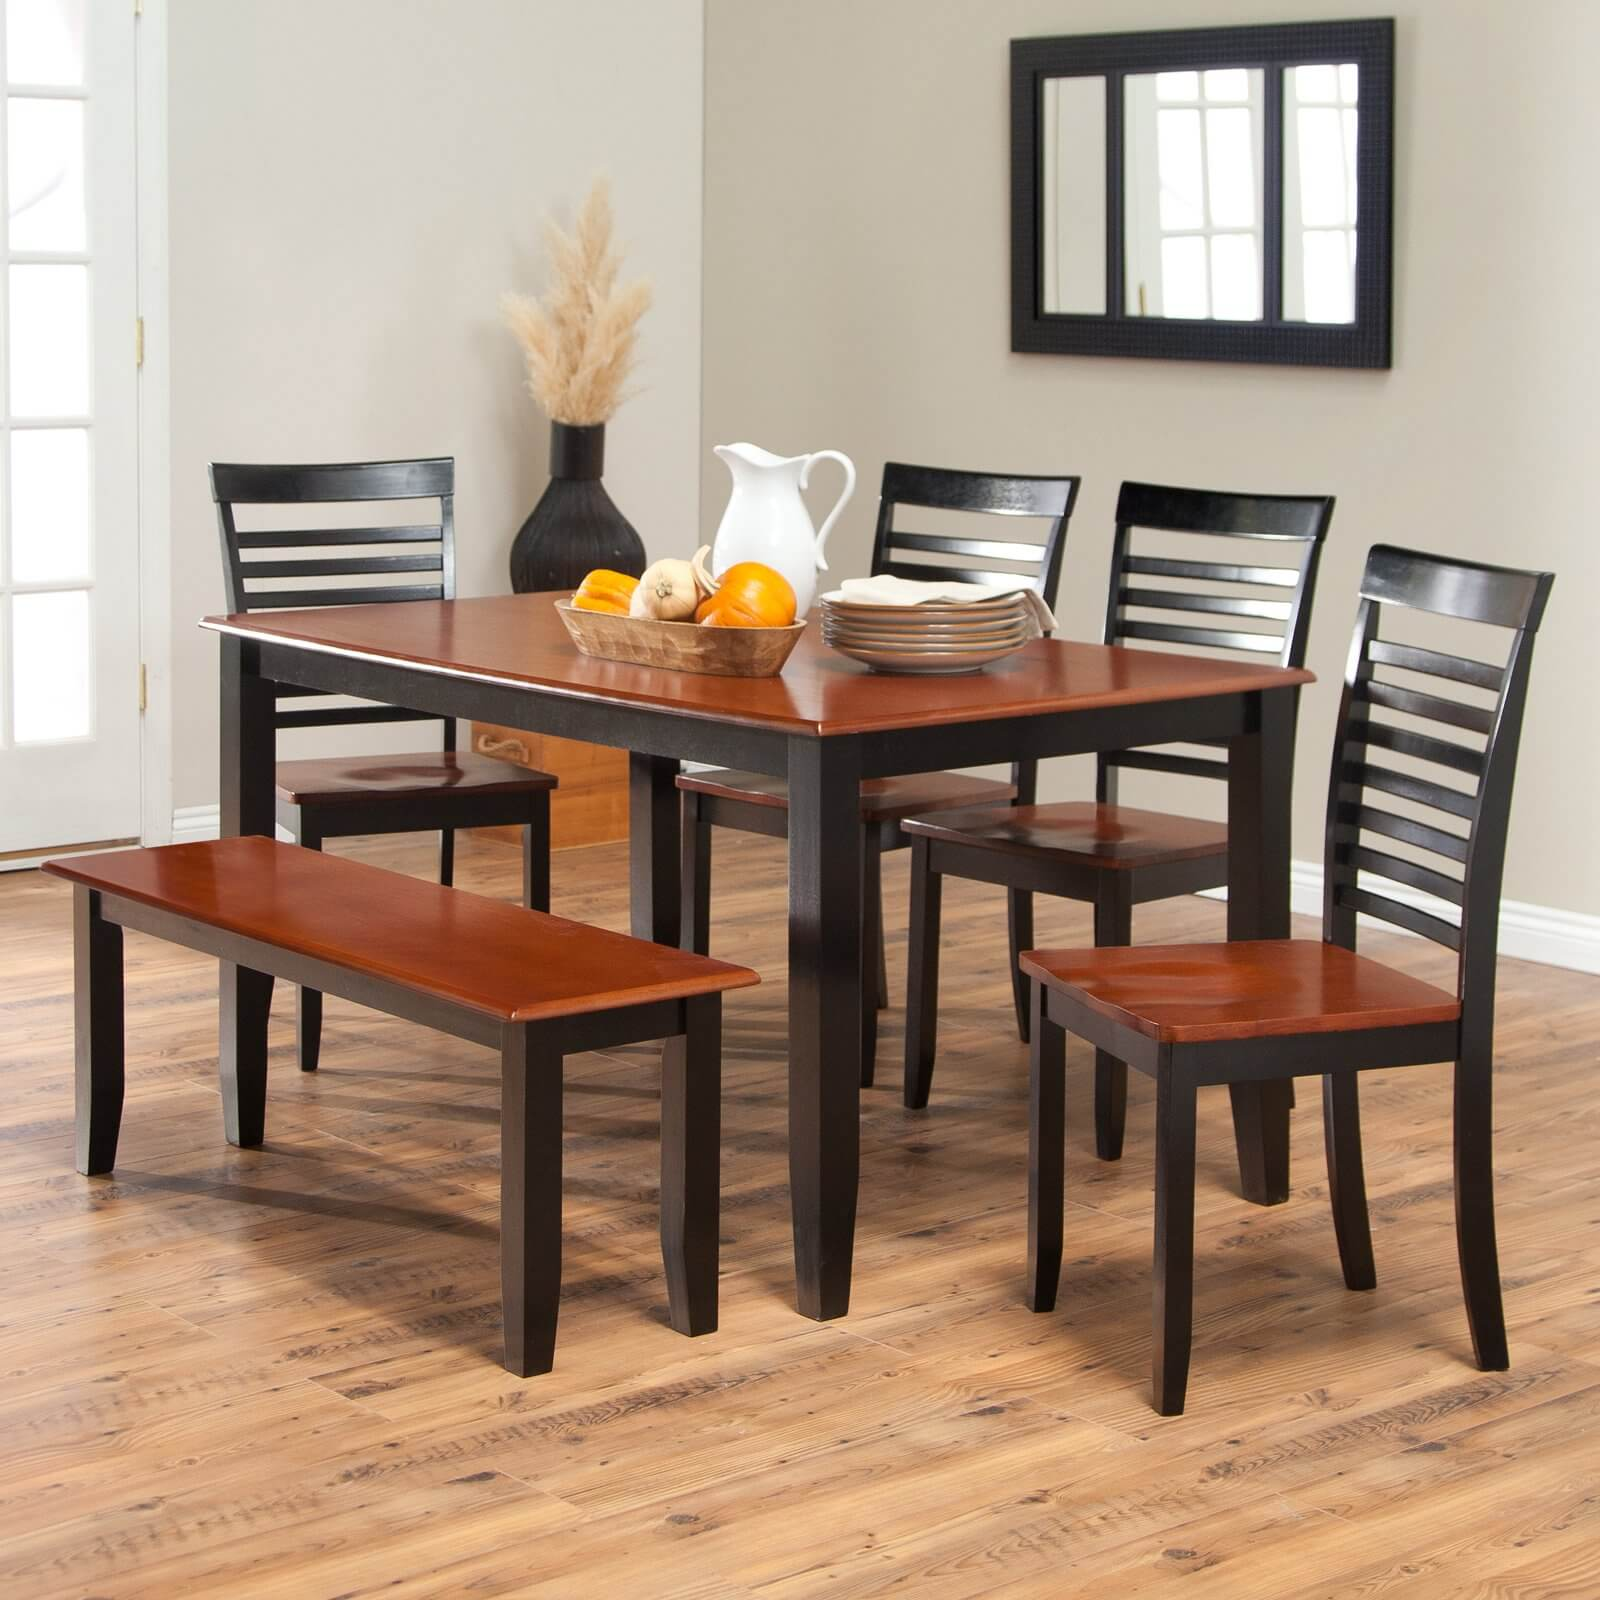 Dining Room Sets: 26 Big & Small Dining Room Sets With Bench Seating